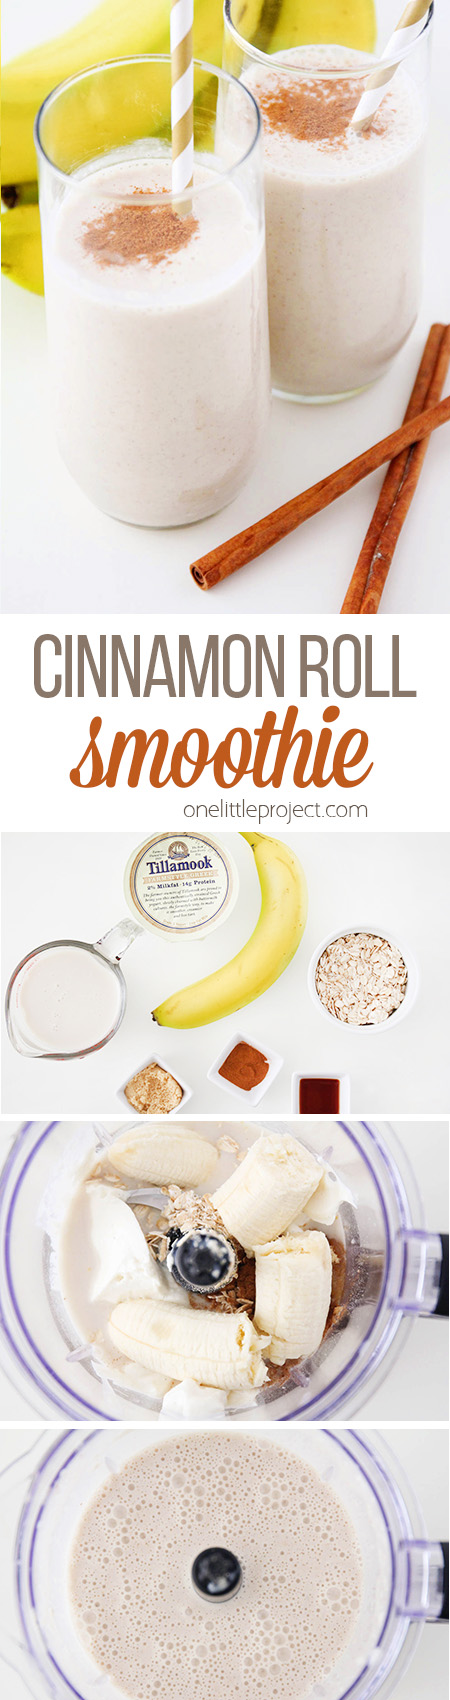 This cinnamon roll breakfast smoothie is SO GOOD and the perfect healthy way to start the day! It's loaded with protein and fiber, and so delicious too! Yum!